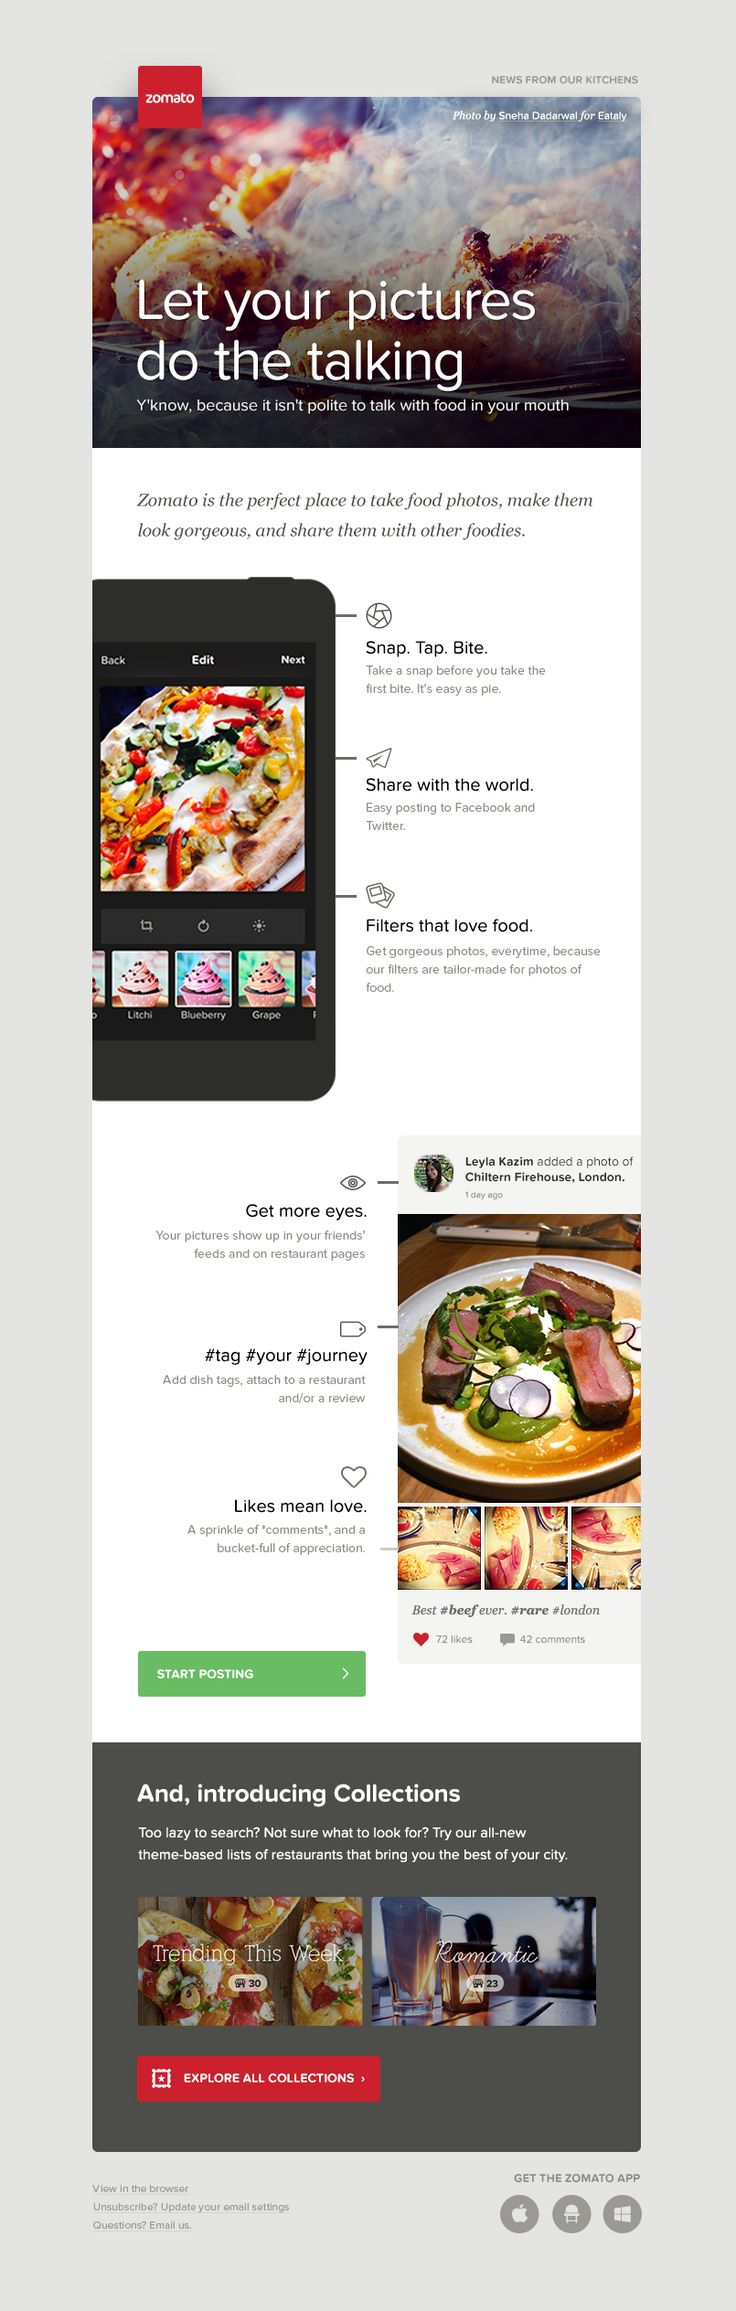 Mailer For Zomato By Juhi Chitravanshi In Graphic Design Web